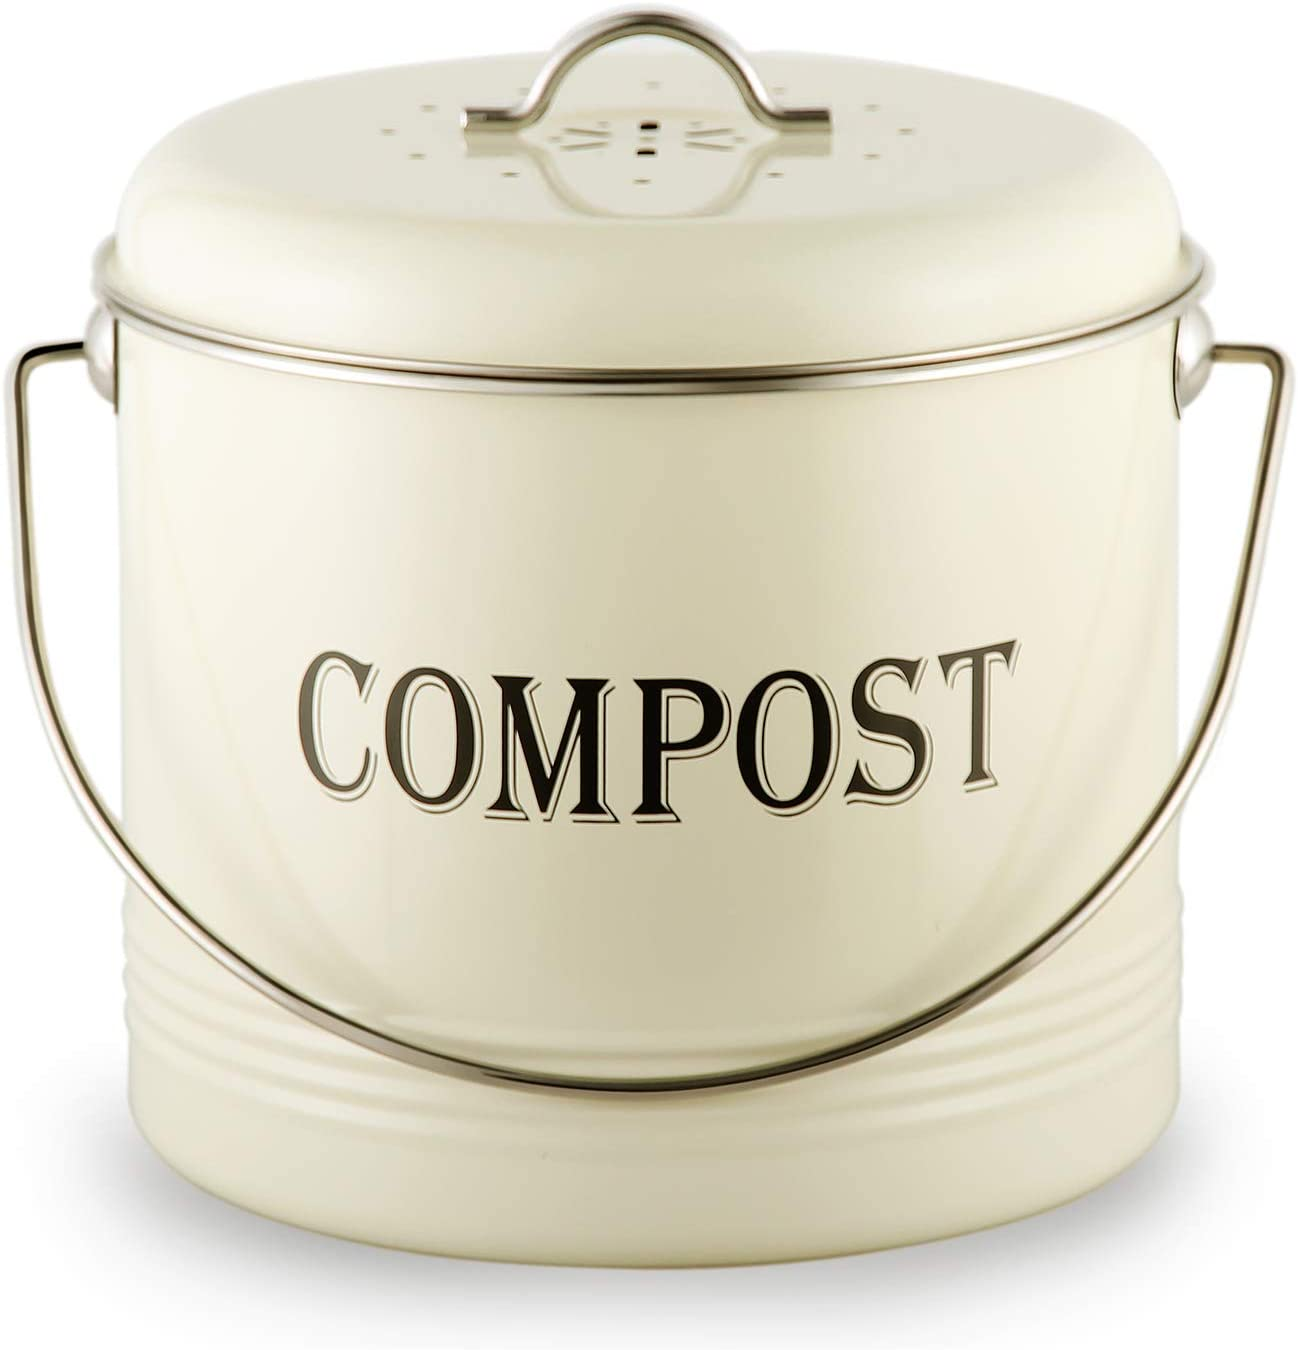 Amazon Com 1 3 Gal Compost Bin For Kitchen Countertop With 7 Bonus Charcoal Filters Vintage Indoor Scraps Compost Bucket With Lid Flies Odor Proof Compost Container Kitchen Pail Recycling Caddy Cream Garden